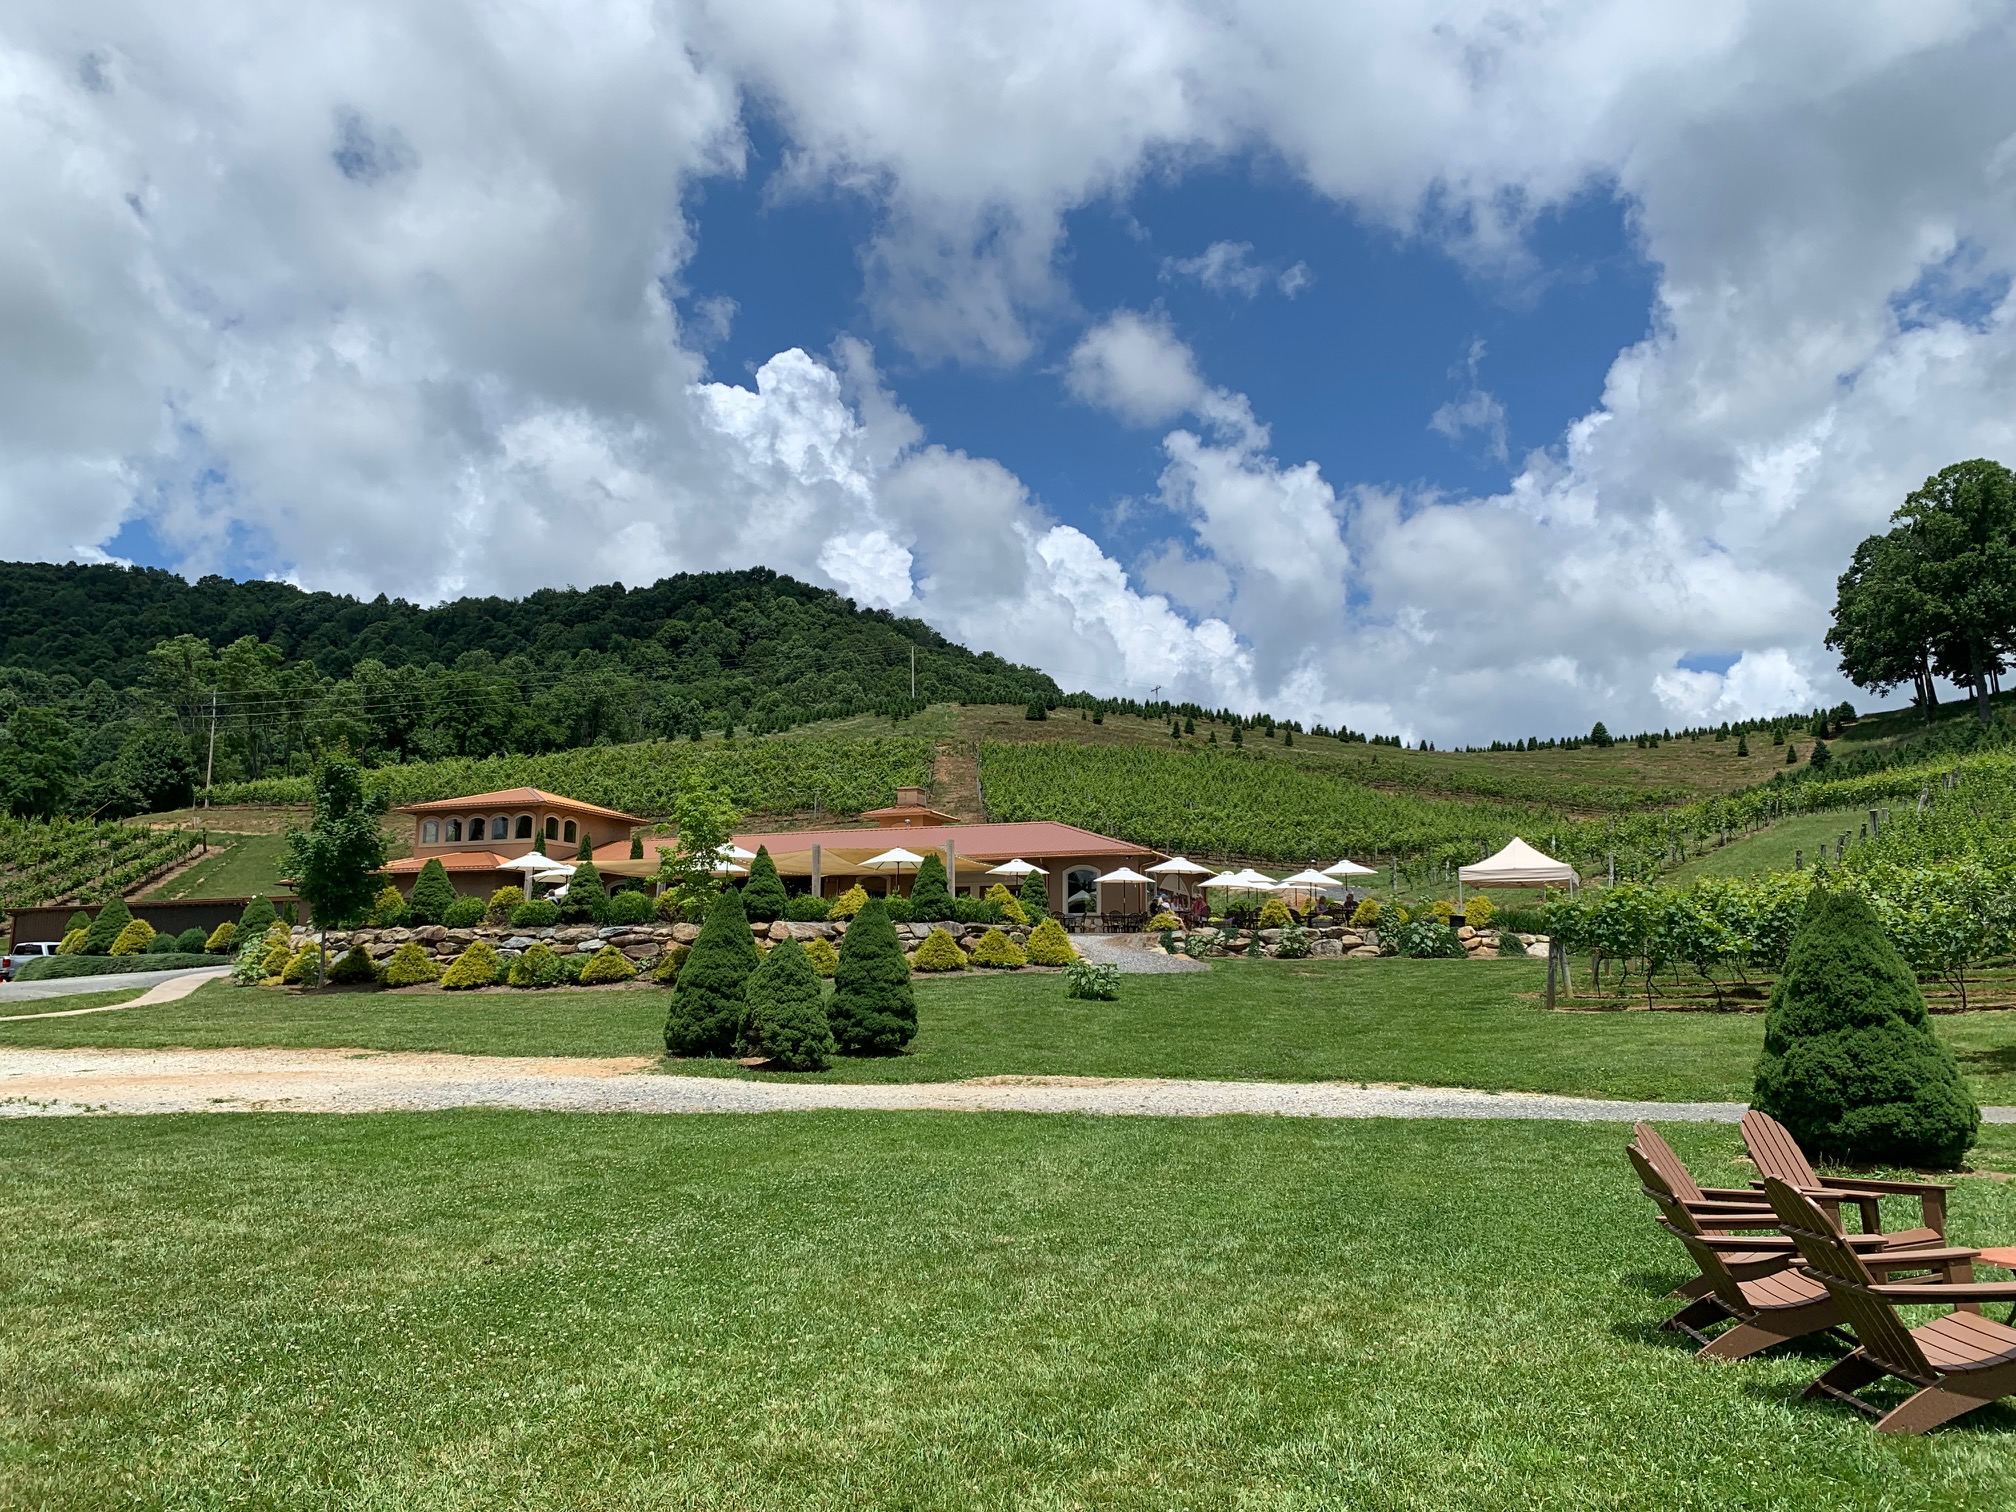 View of Linville Falls Winery patio and lawn